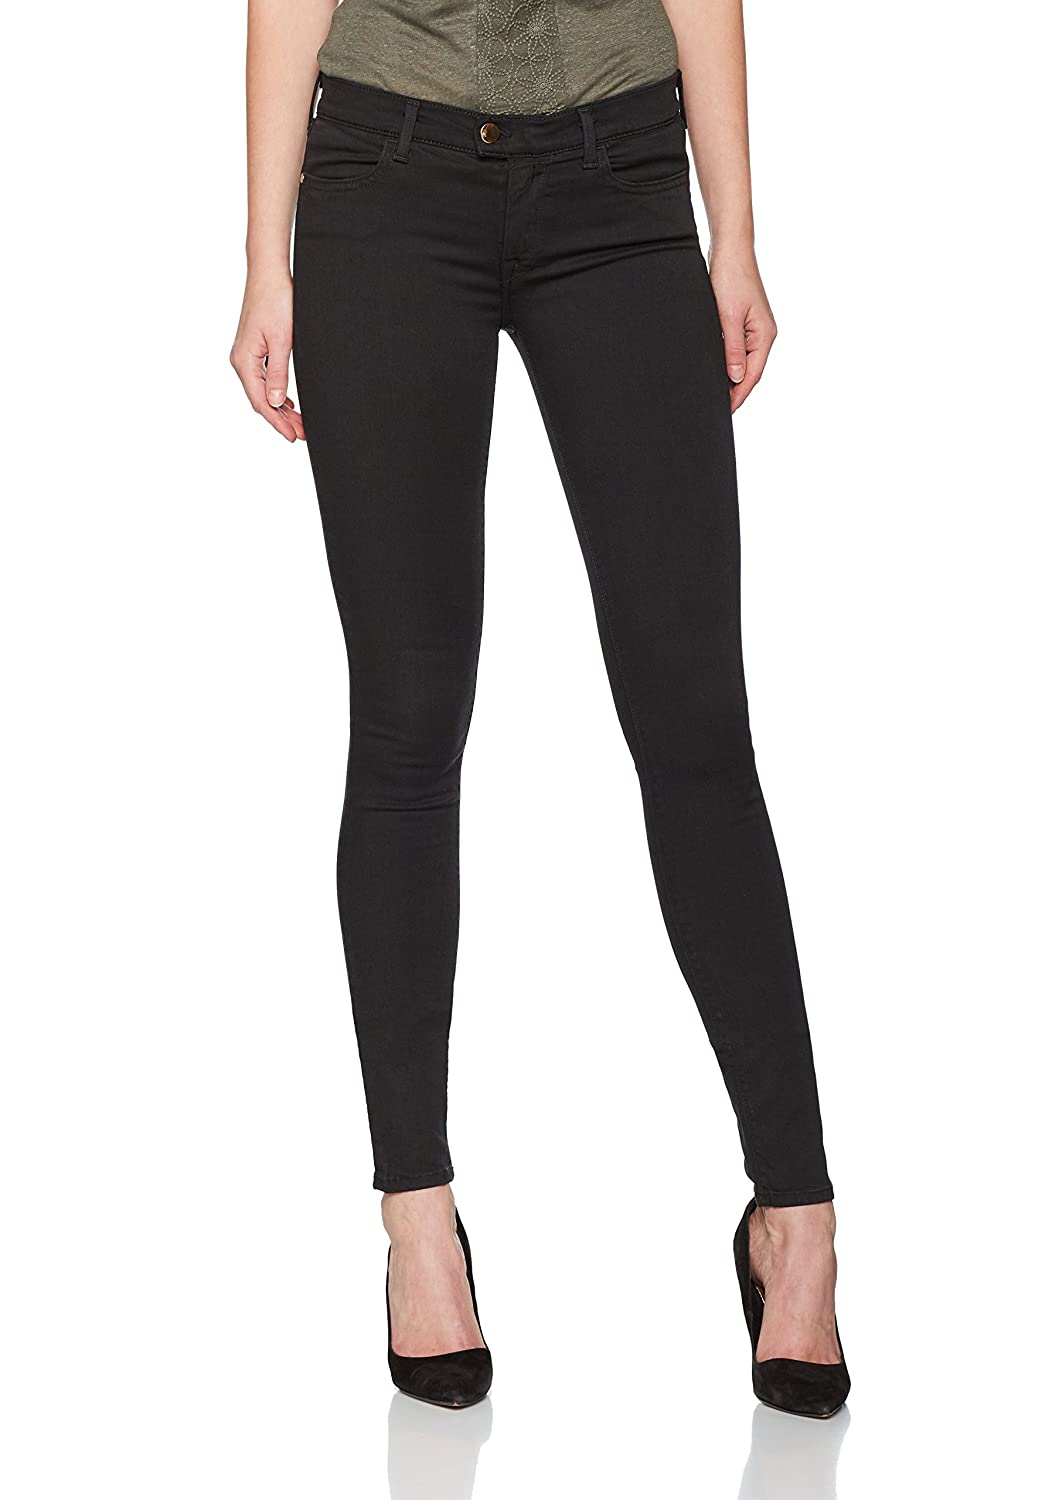 TALLA 29W / 32L. REPLAY Touch Dark Black Jeans Ajustados para Mujer